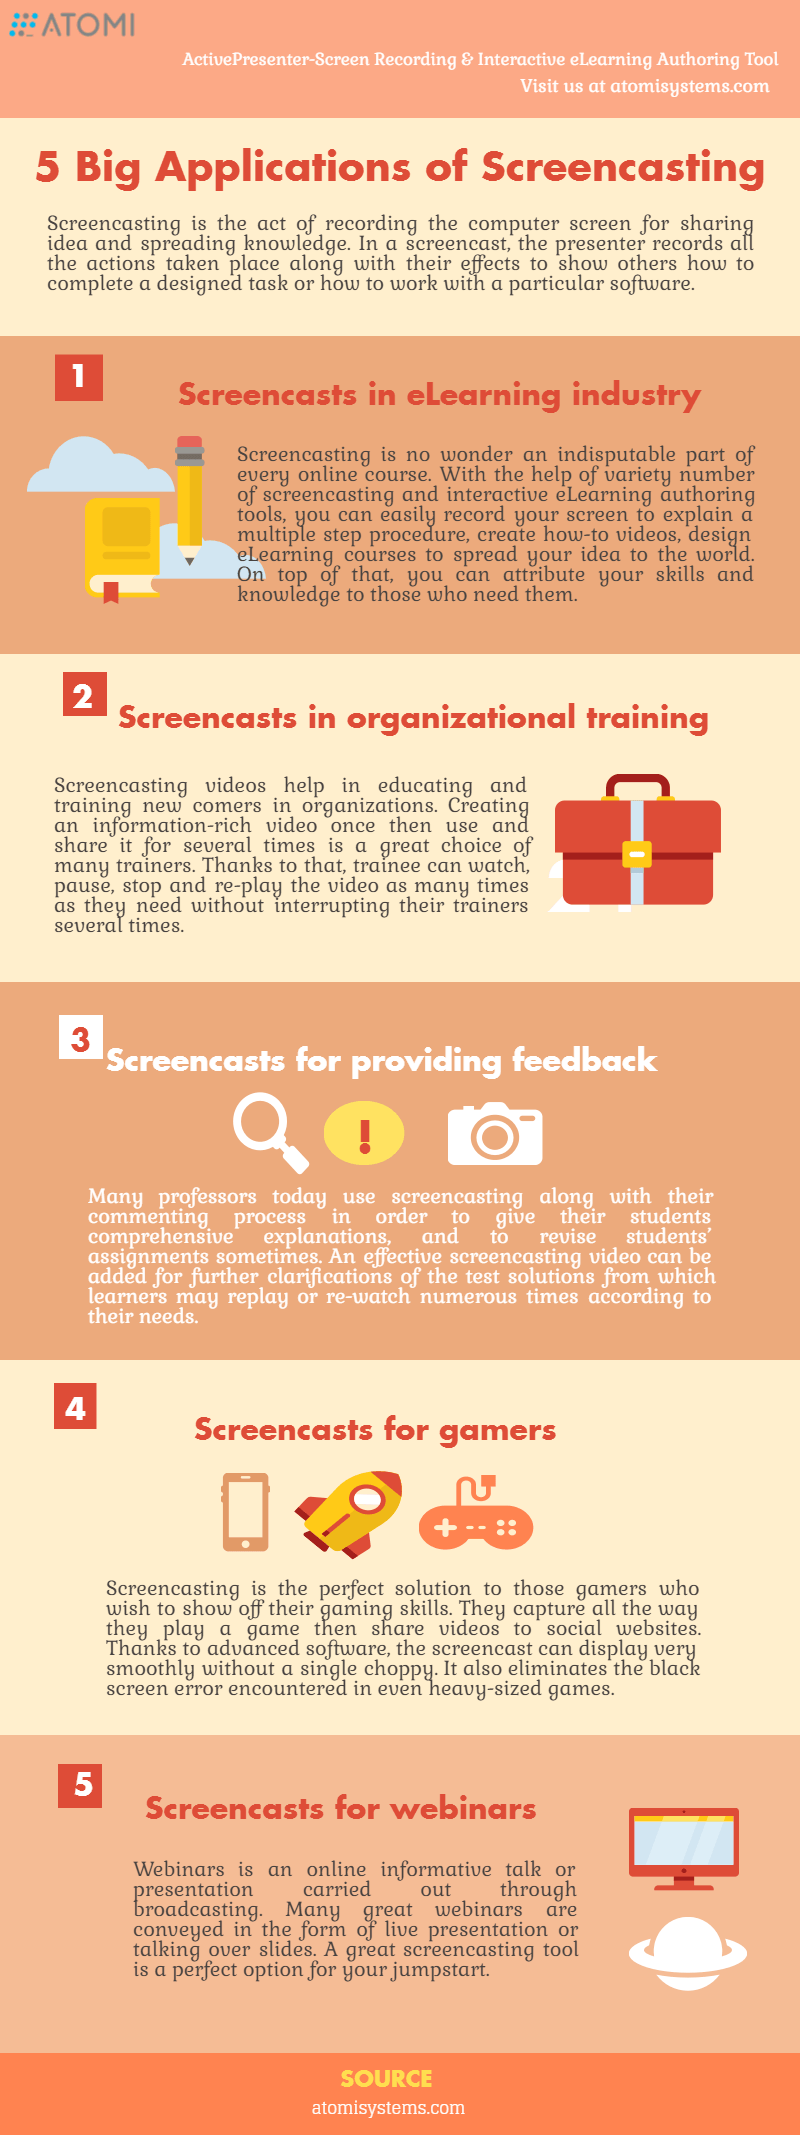 5 Big Applications of Screencasting Infographic